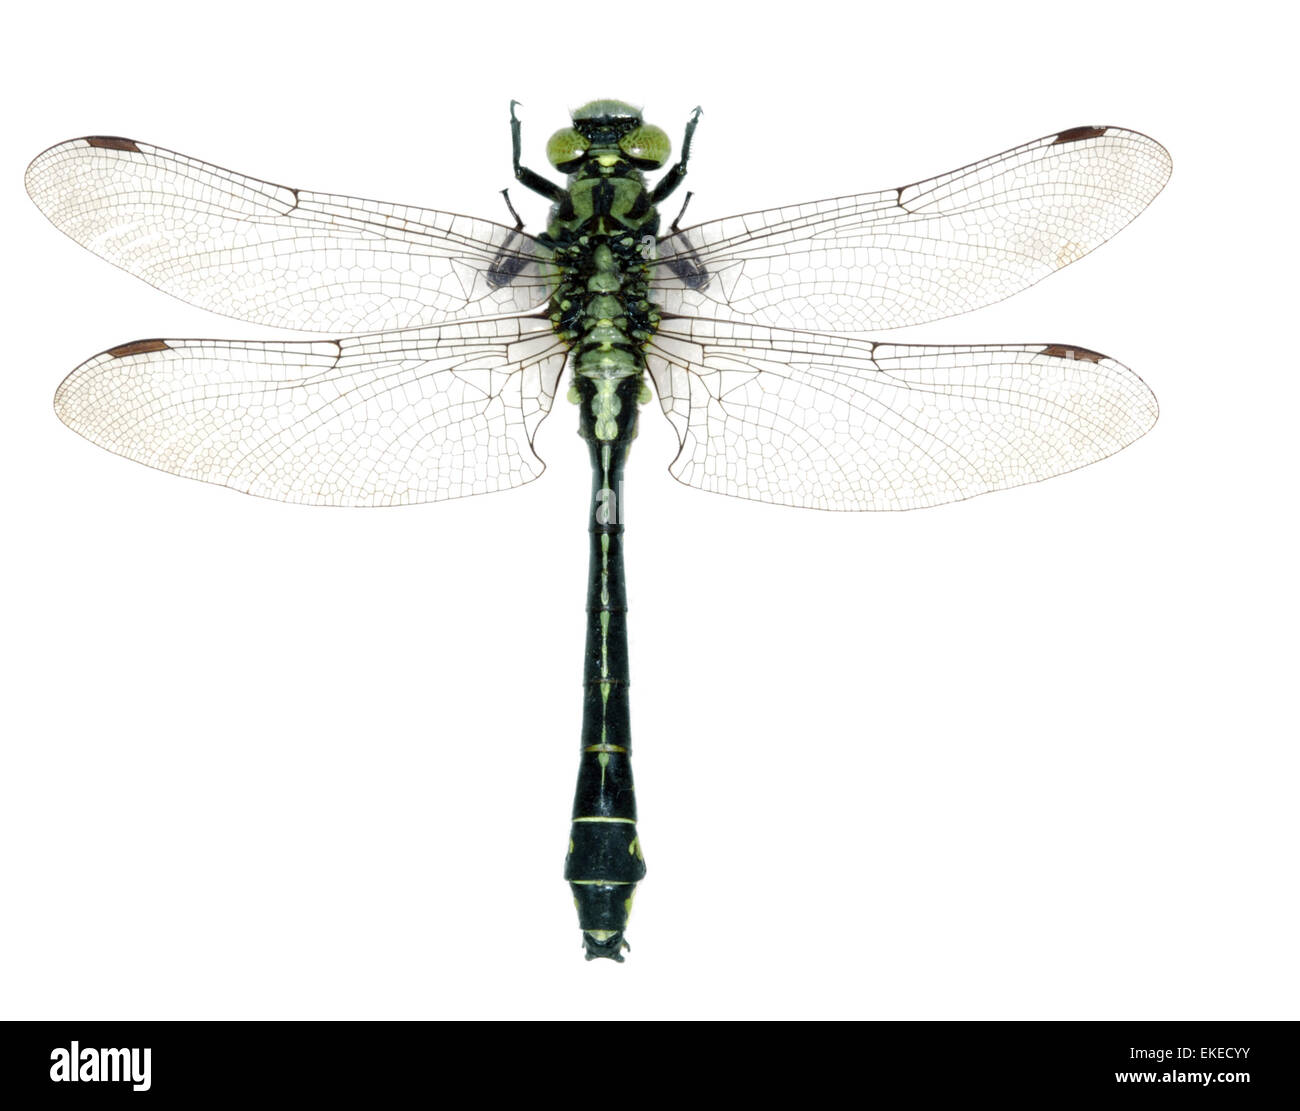 Club-tailed Dragonfly - Gomphus vulgatissimus - Stock Image